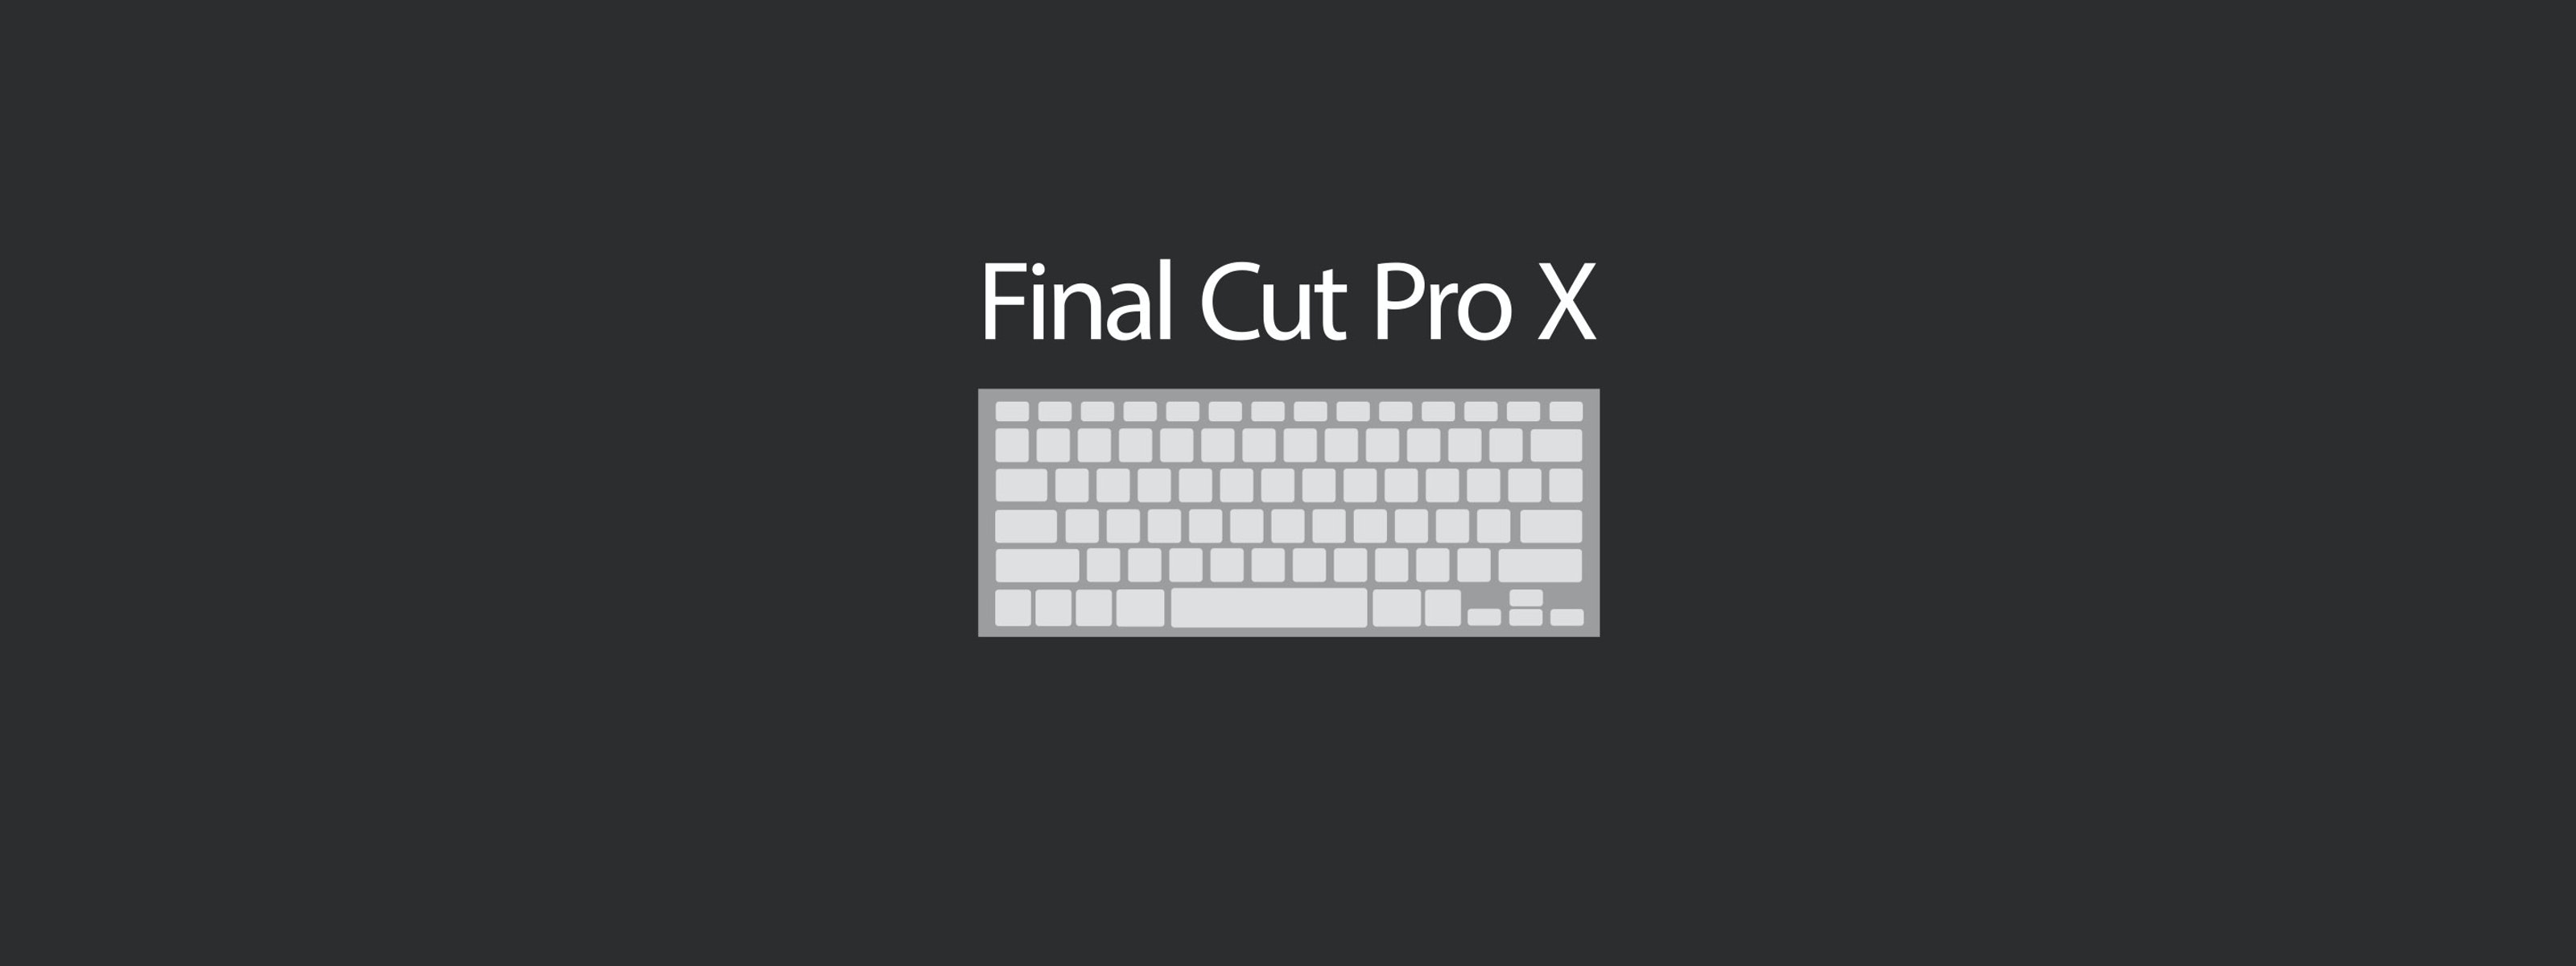 10 Final Cut Pro X Keyboard Shortcuts Motion Array